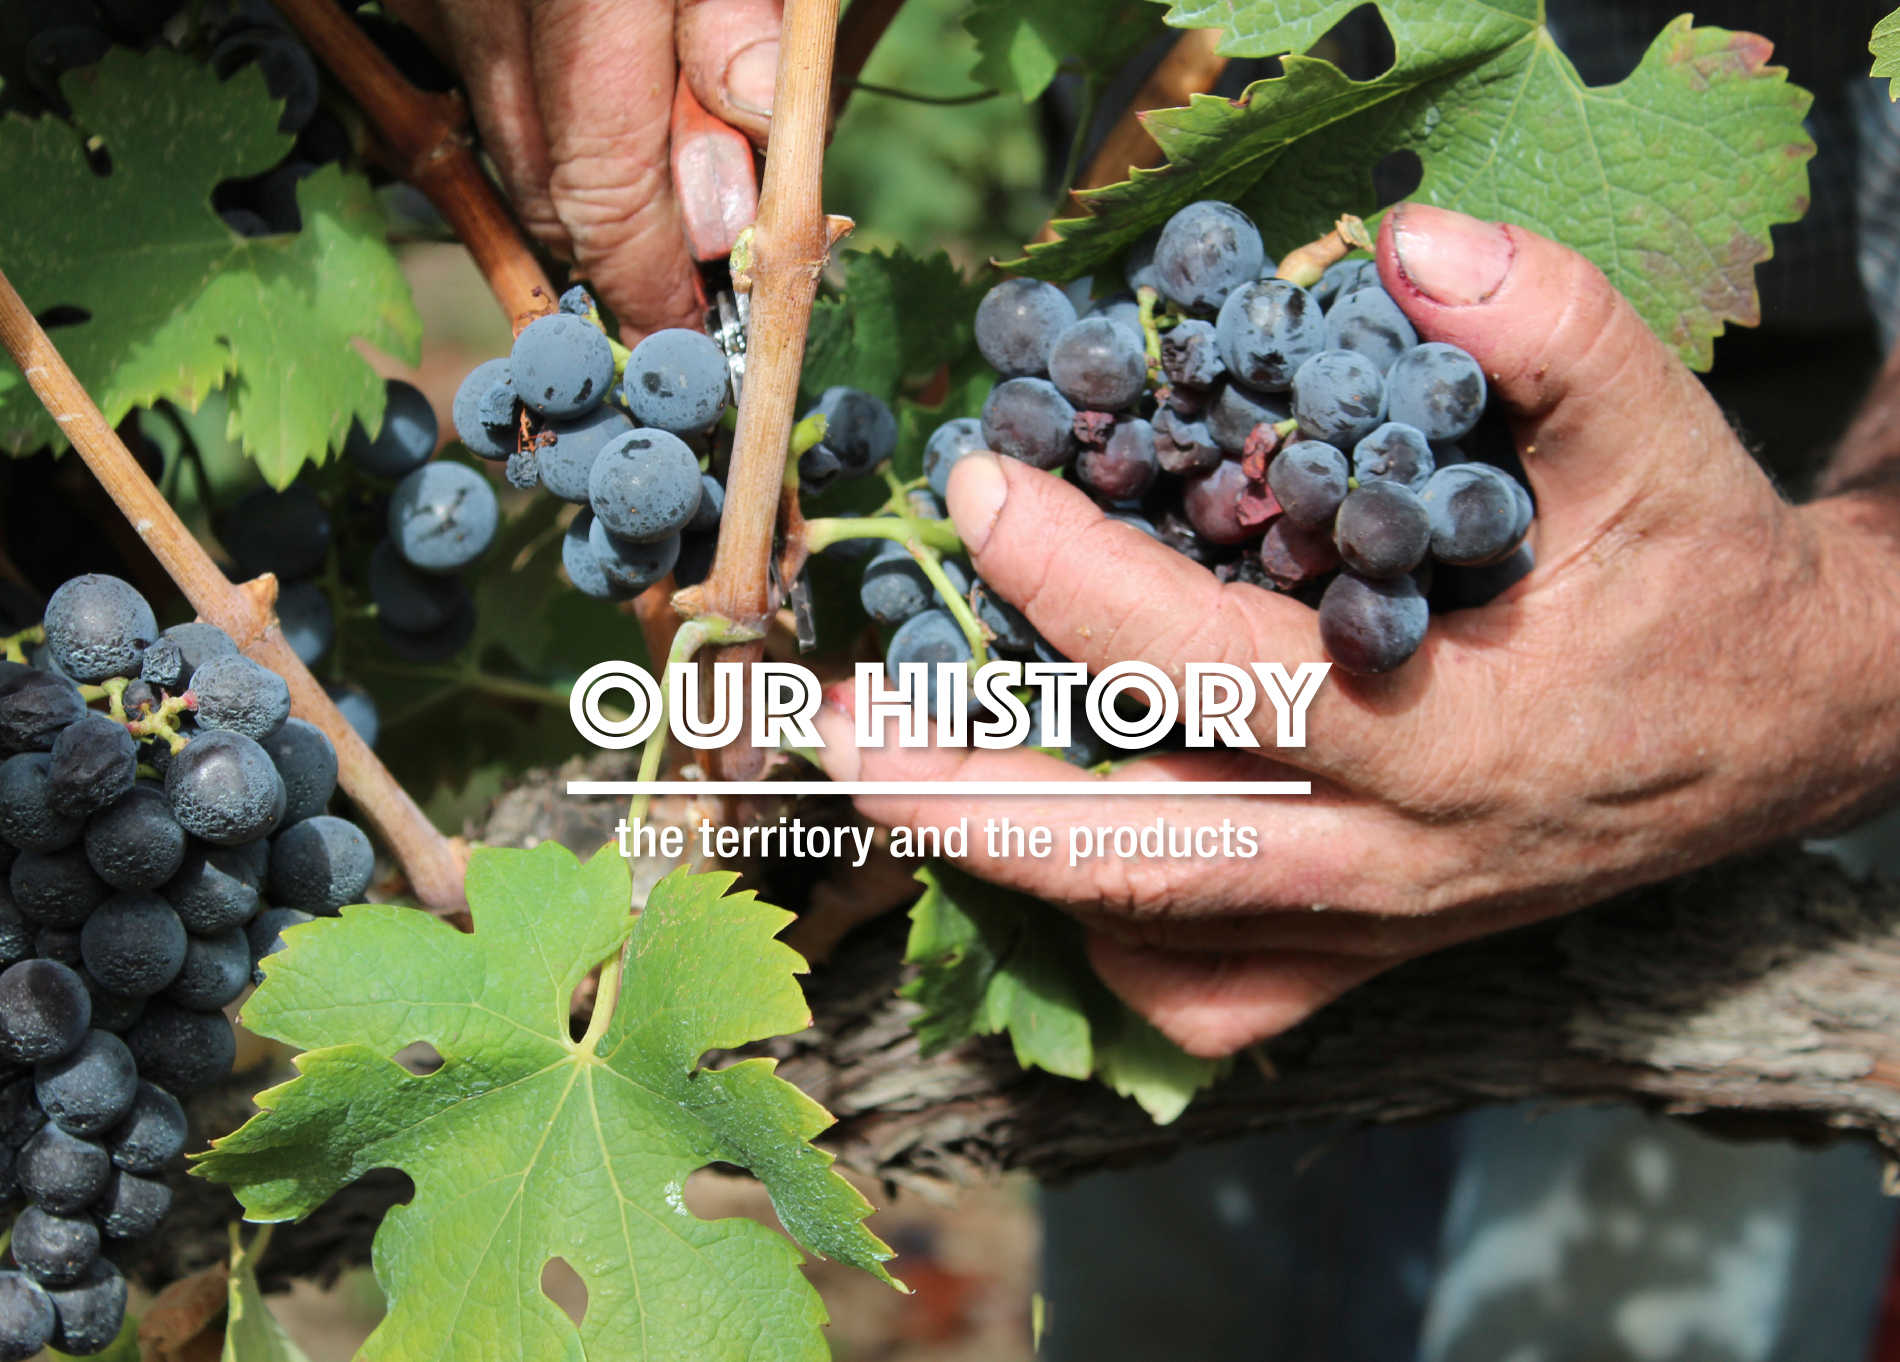 Agricola Marmo - Our history